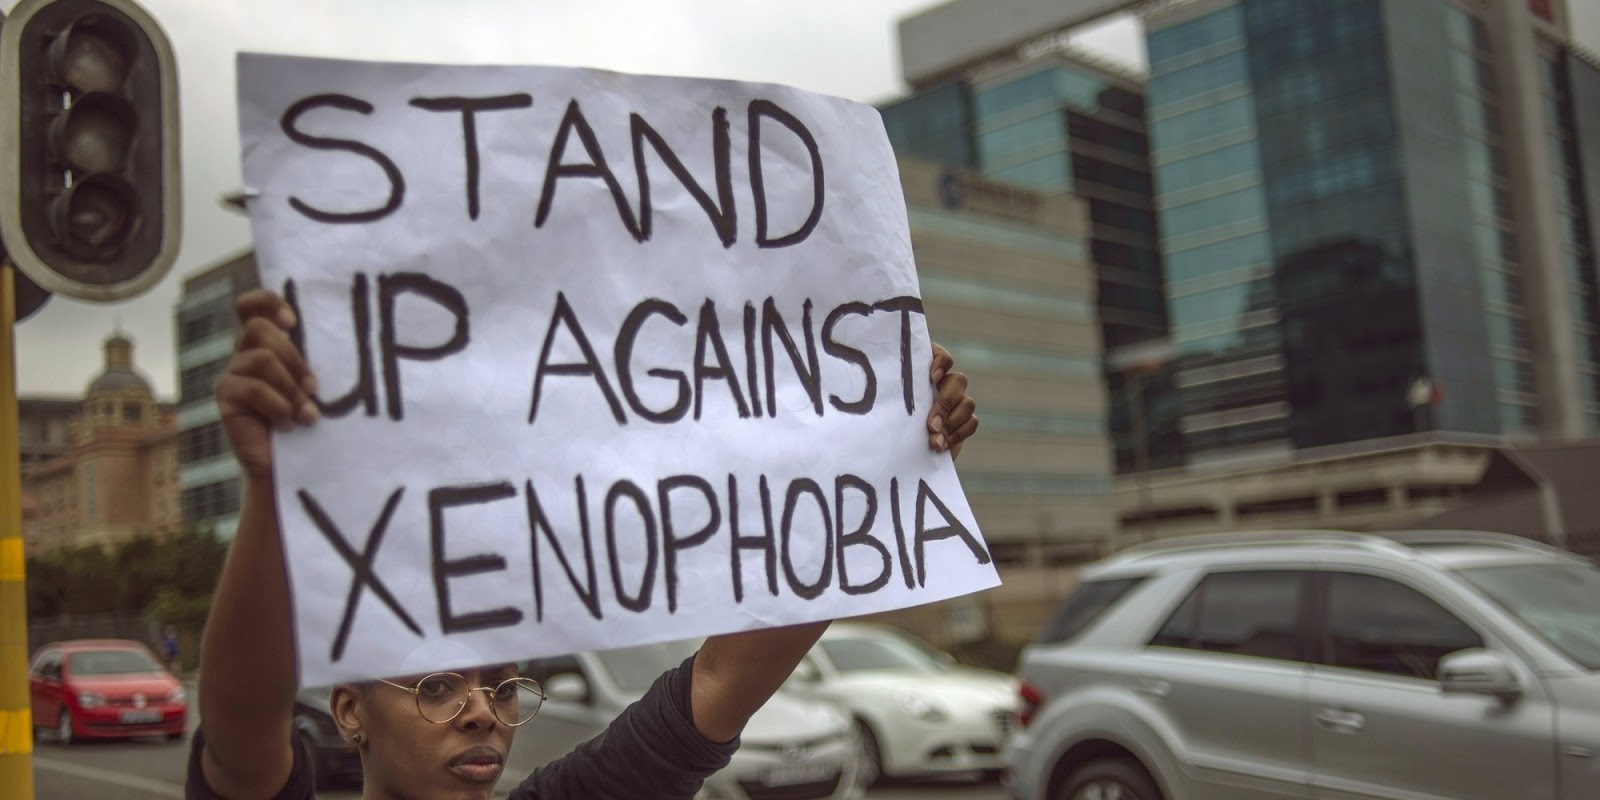 Xenophobia Xenophobia: Another Sh...